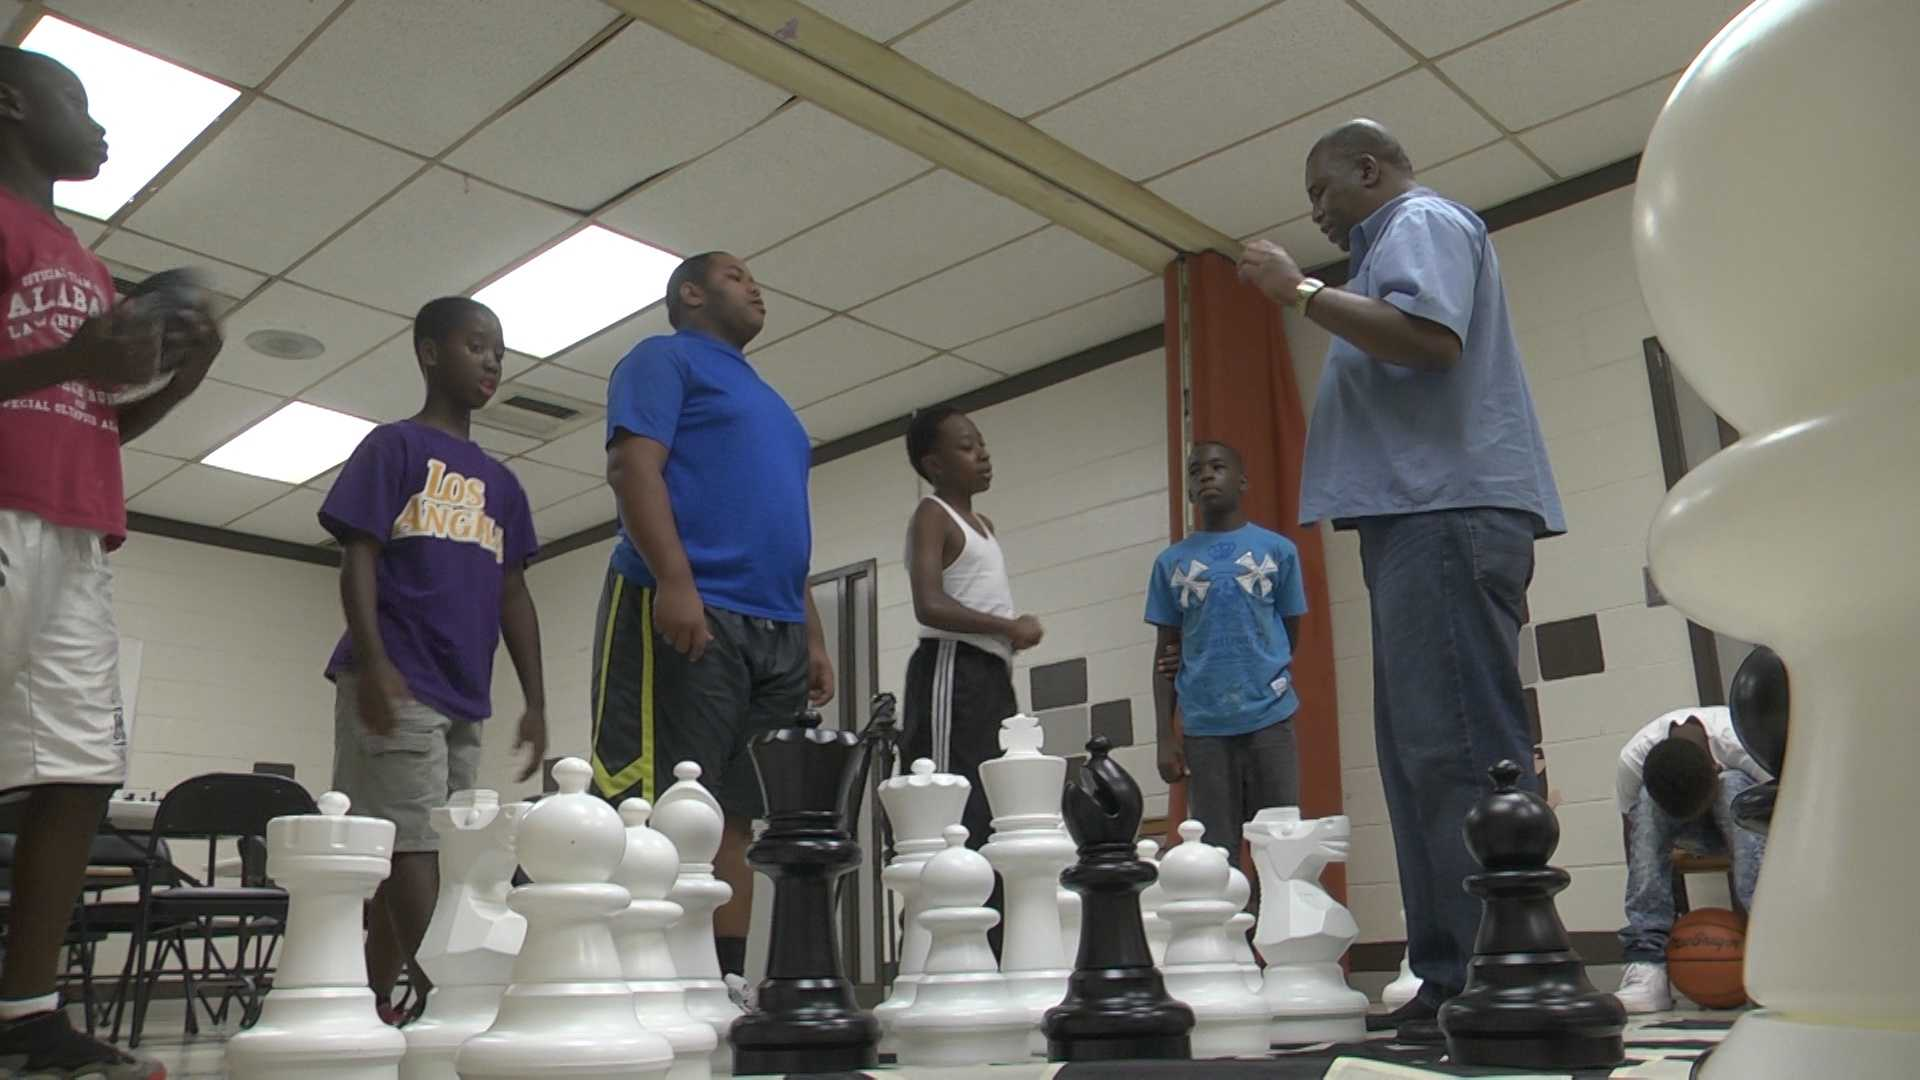 LIFE SIZED CHESS BREAK THE CYCLE OF URBAN CRIME-NV.Still001.jpg